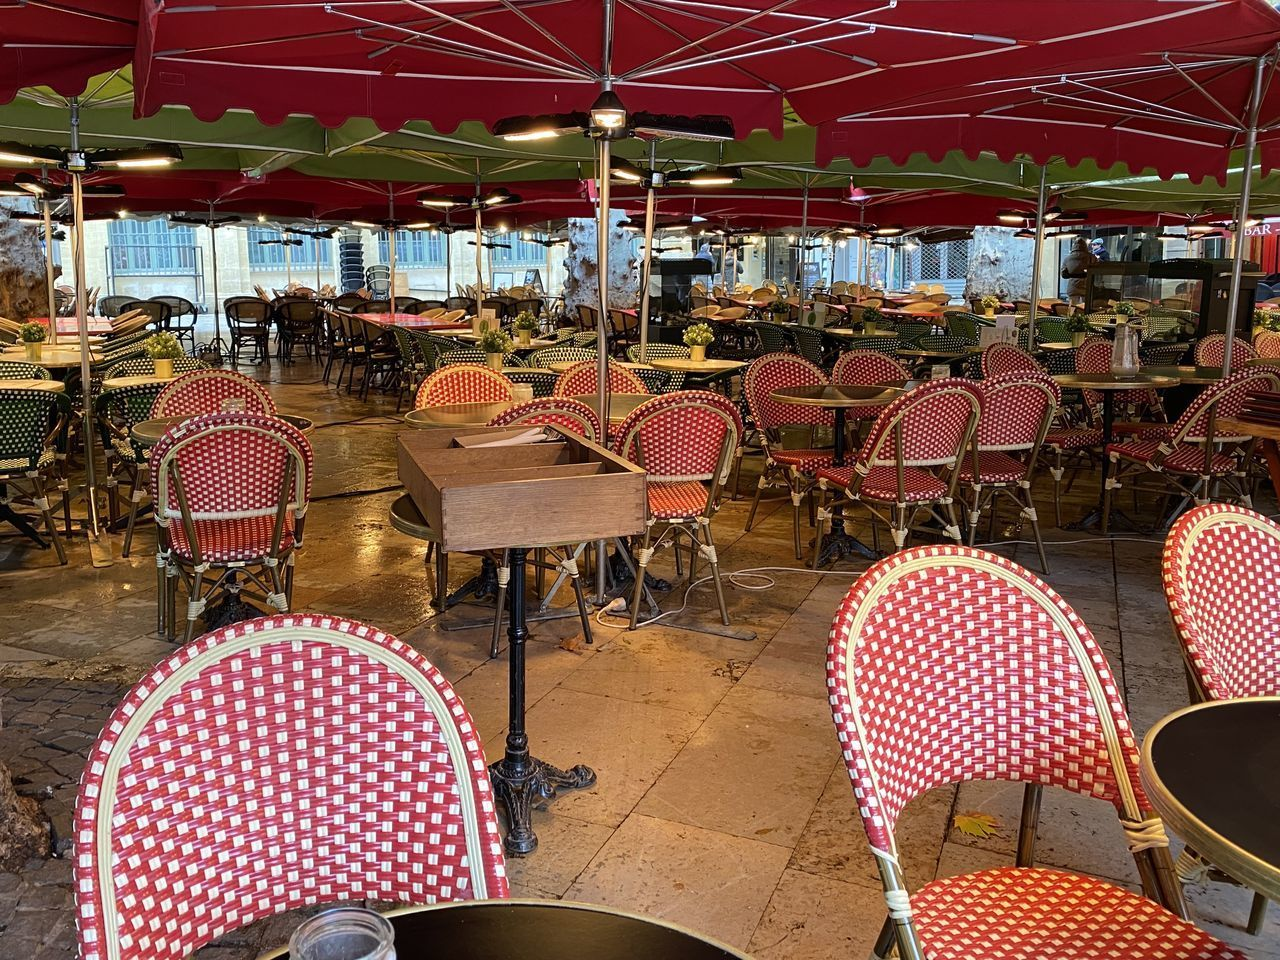 chair, seat, table, restaurant, red, cafe, business, absence, food and drink, indoors, empty, architecture, no people, furniture, sidewalk cafe, food and drink industry, tablecloth, illuminated, day, setting